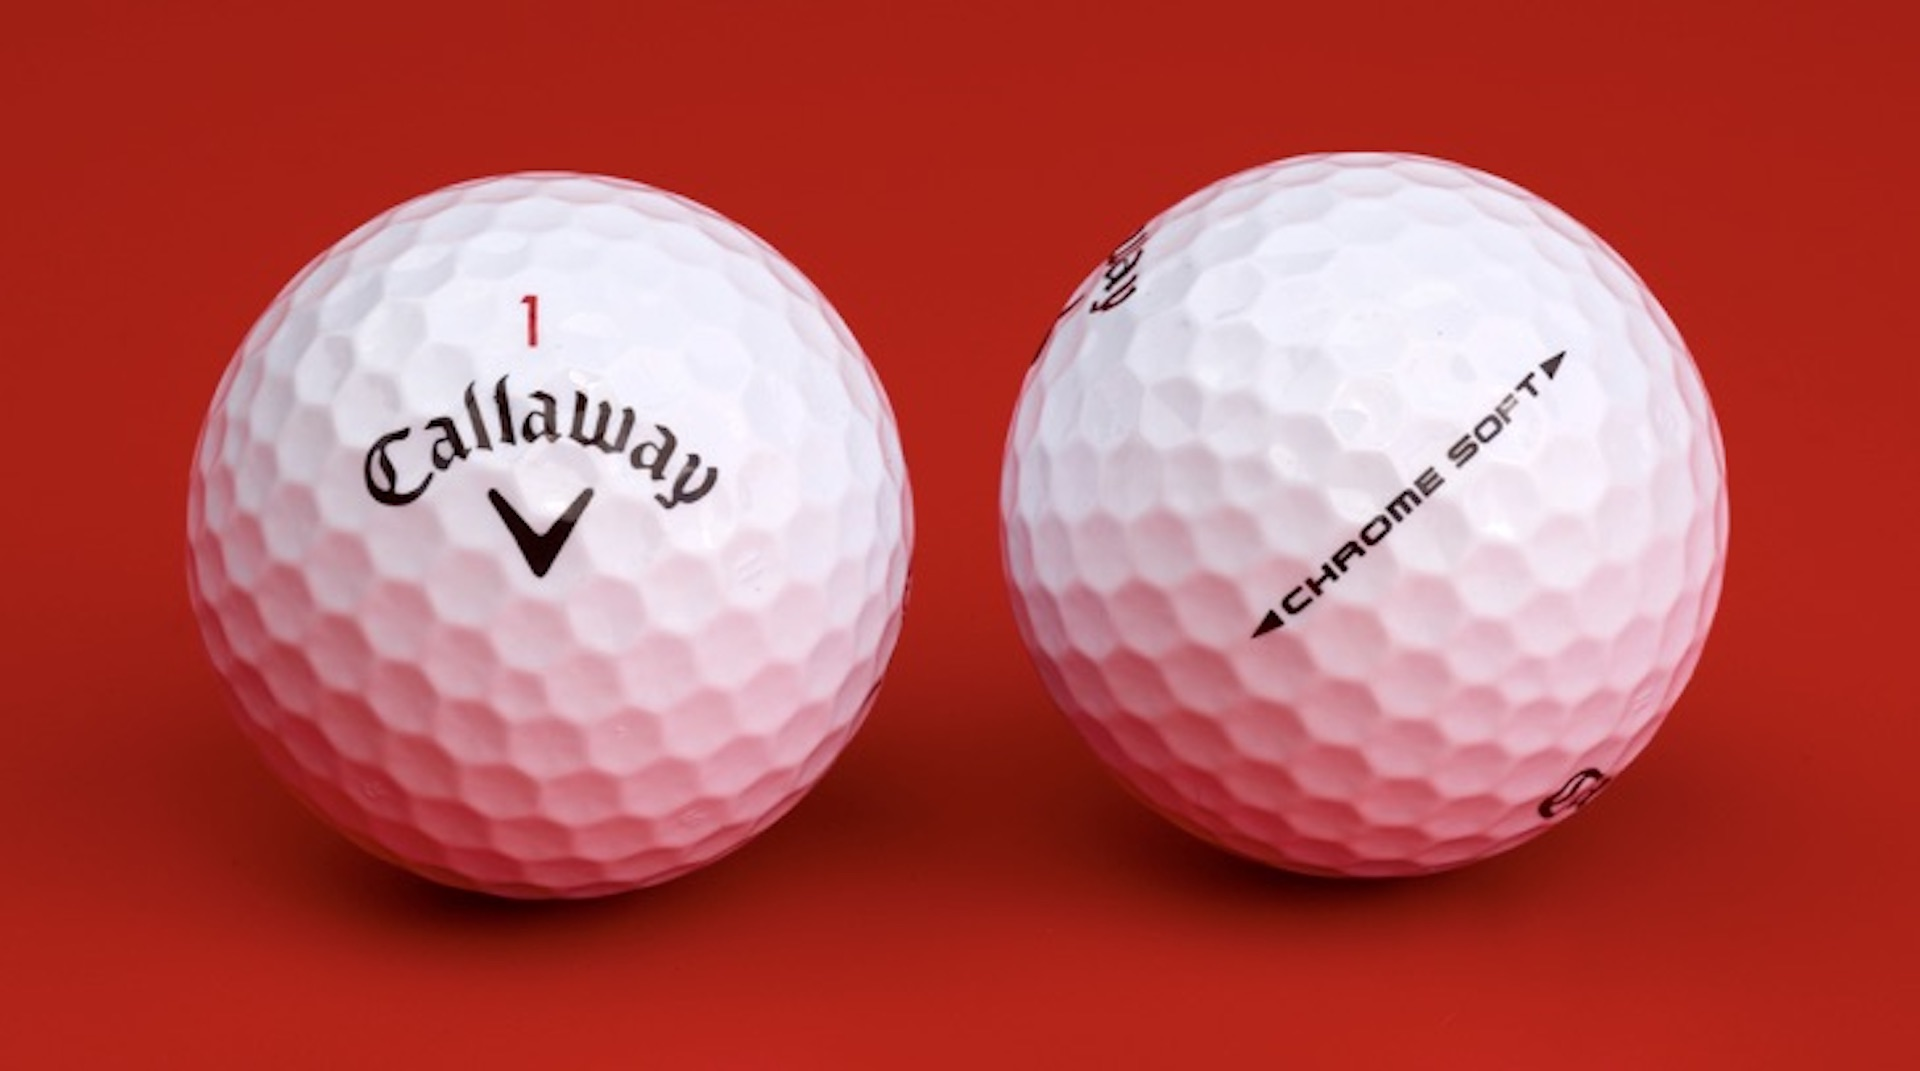 Callaway launches controversial new golf ball